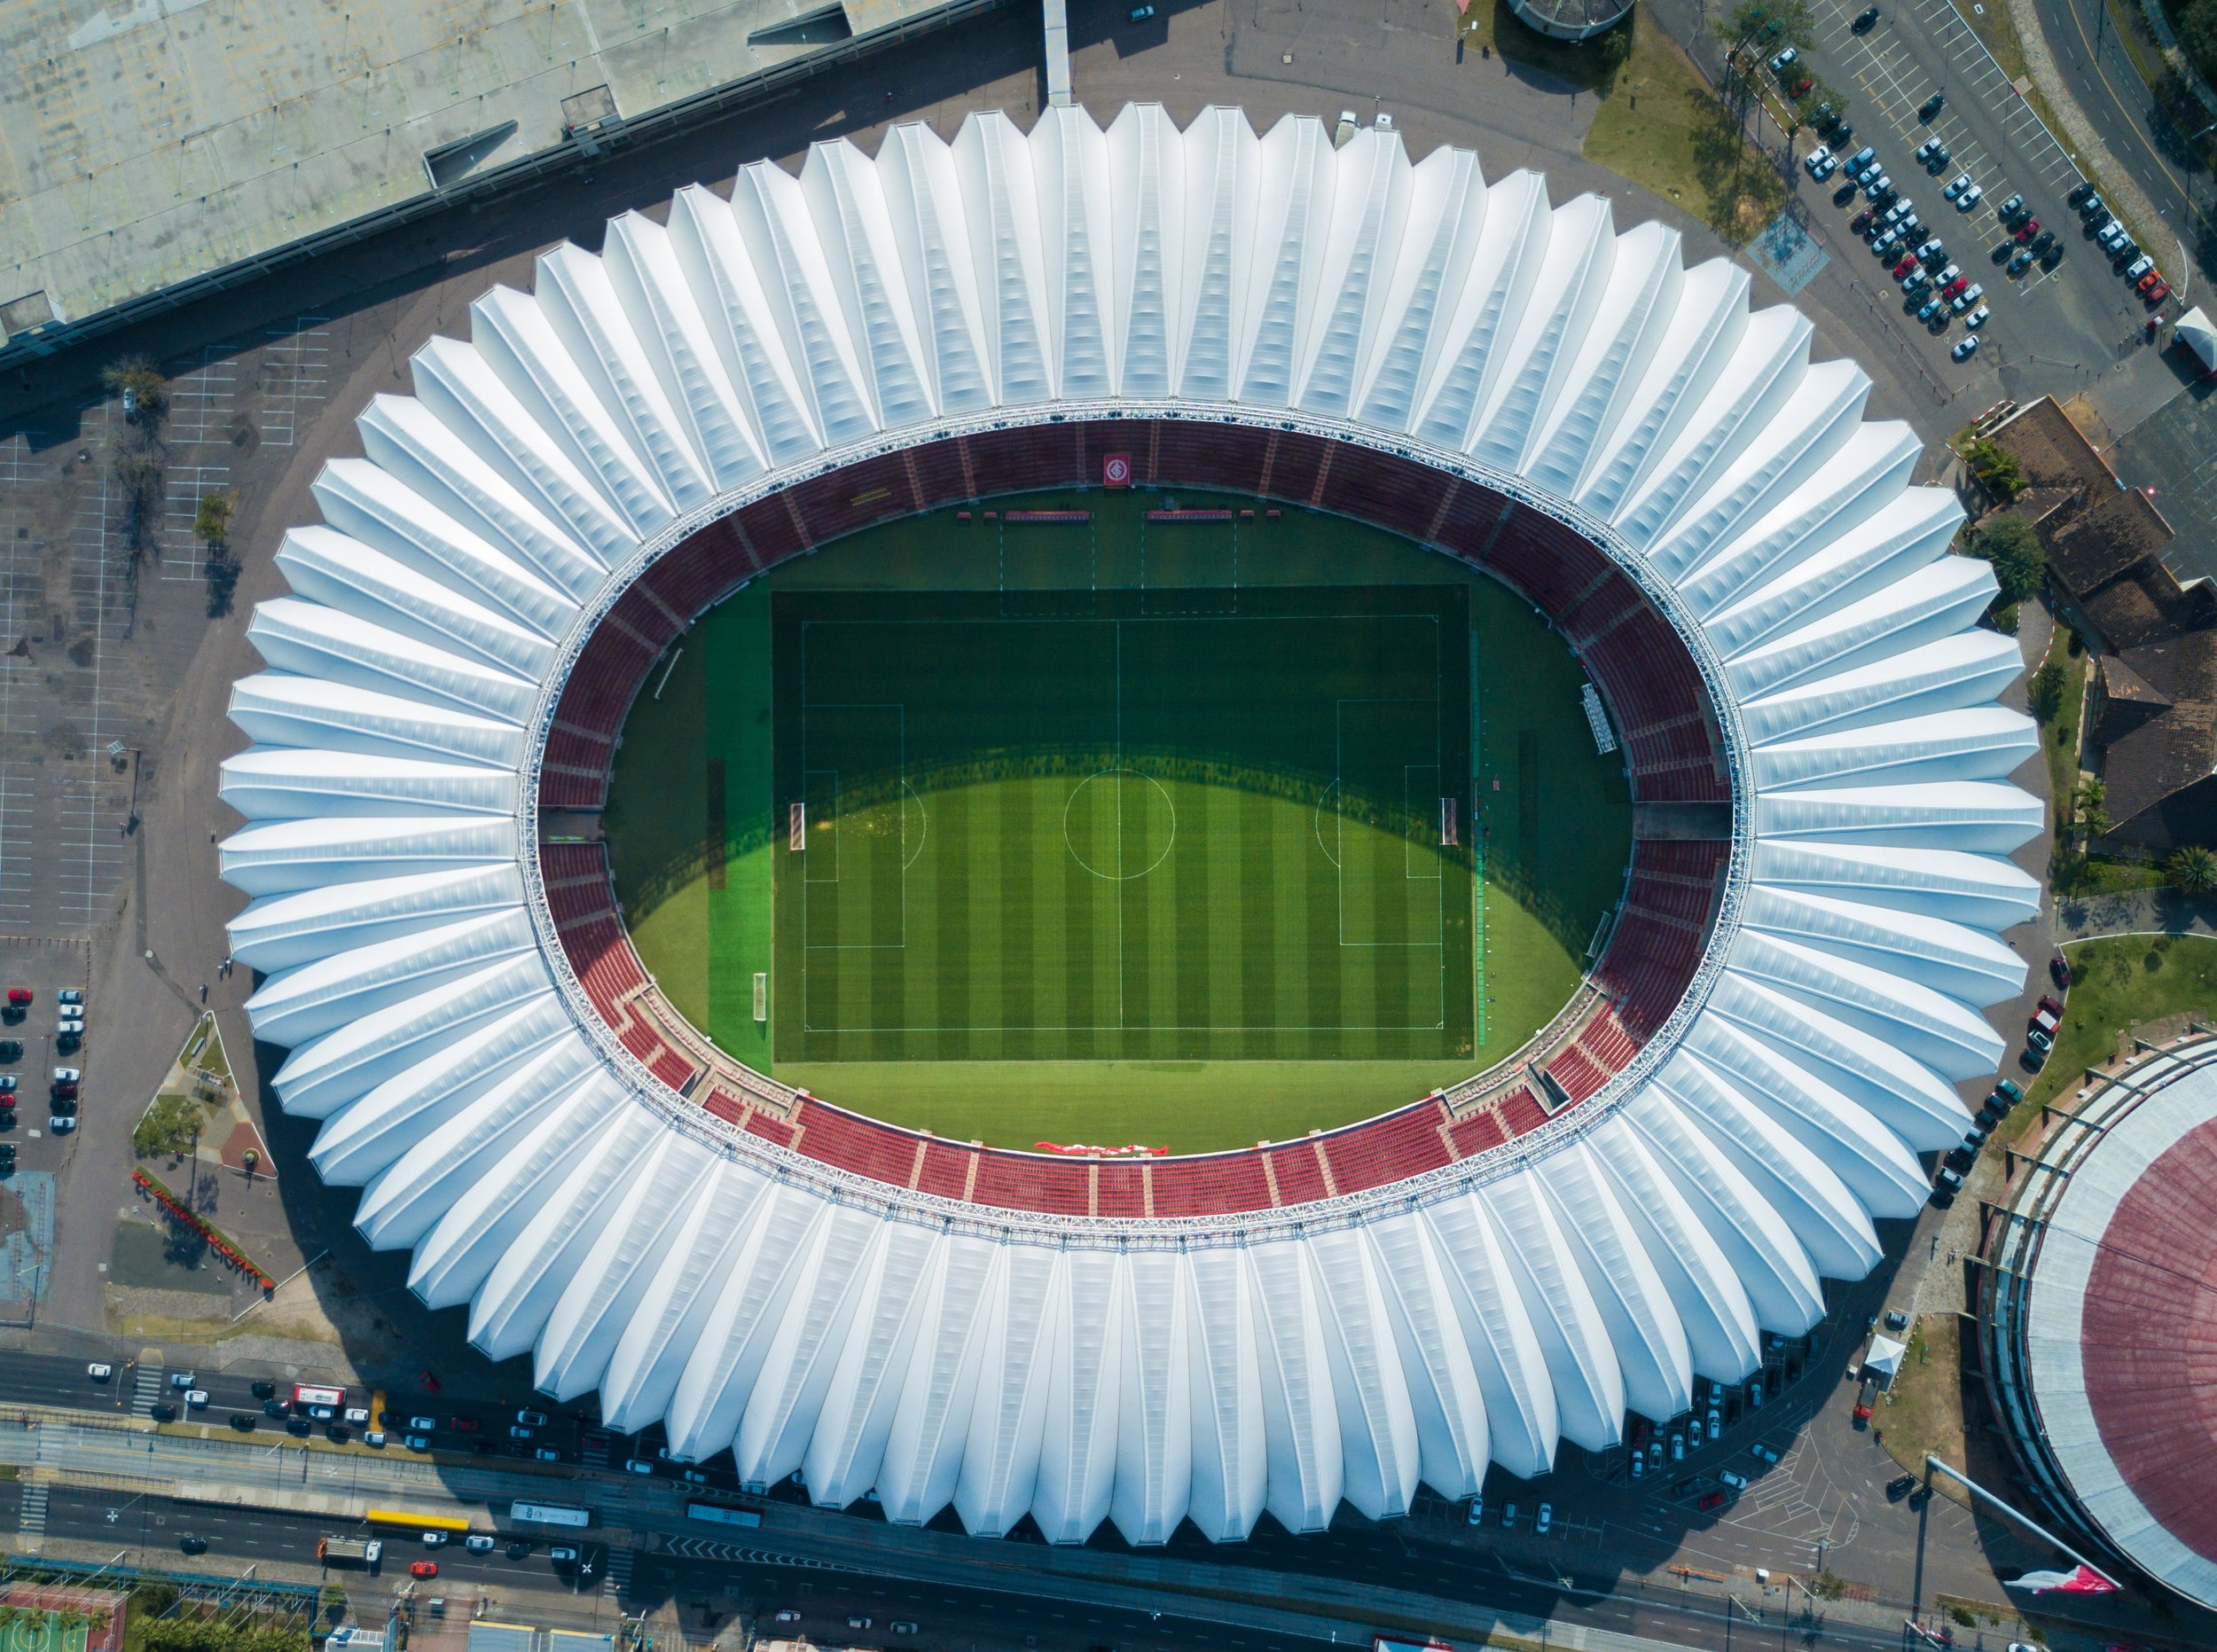 One of the largest football stadiums in the world is in Rio - check out Maracana Stadium